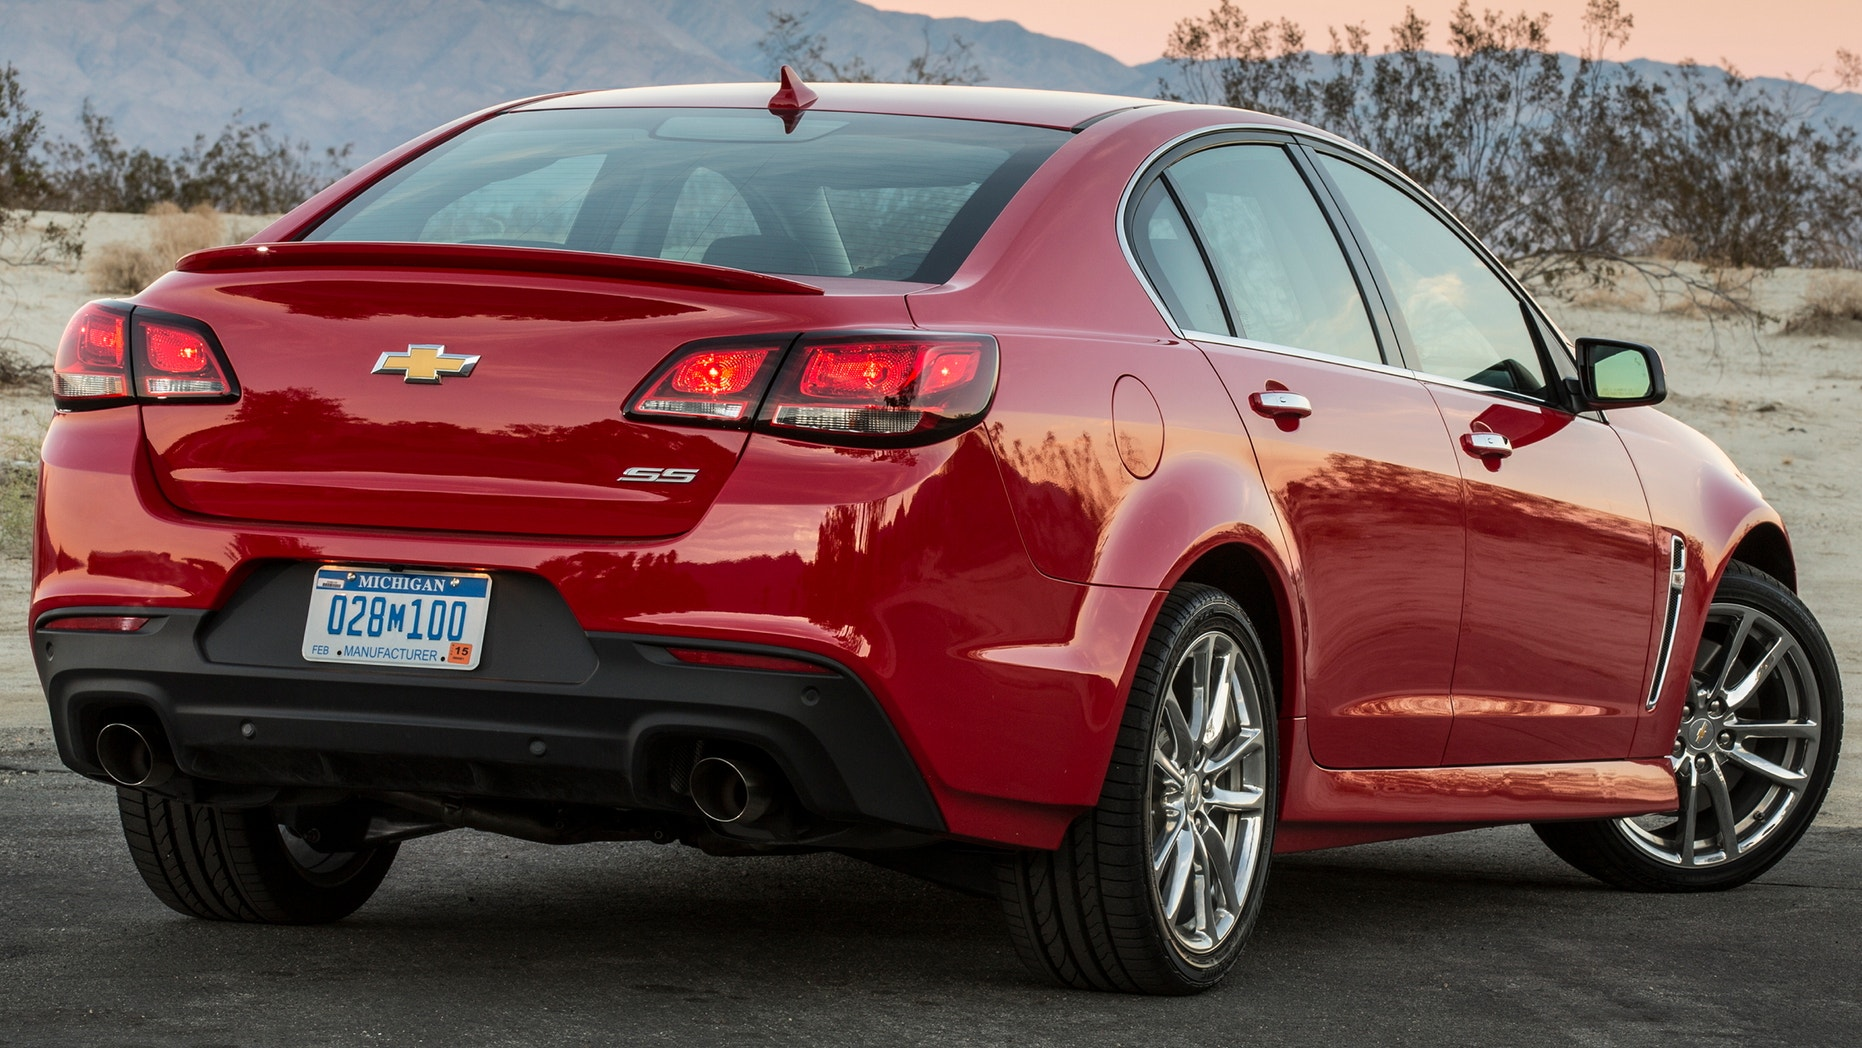 The 2015 Chevrolet SS has a combined fuel economy rating of 17 mpg